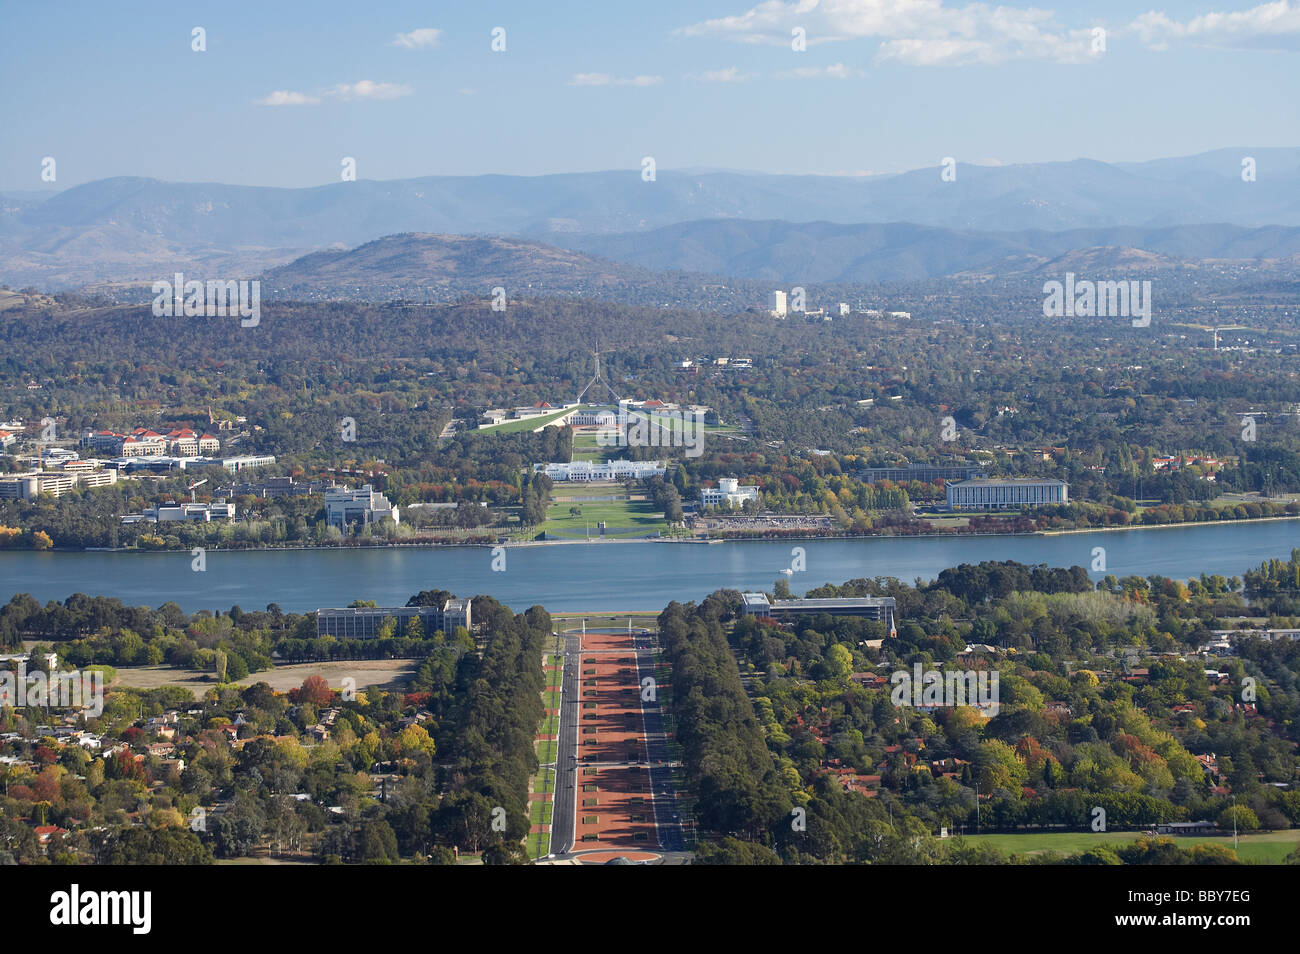 Parliament House Capital Hill Old Parliament House Lake Burley Griffin and ANZAC Parade Canberra ACT Australia - Stock Image